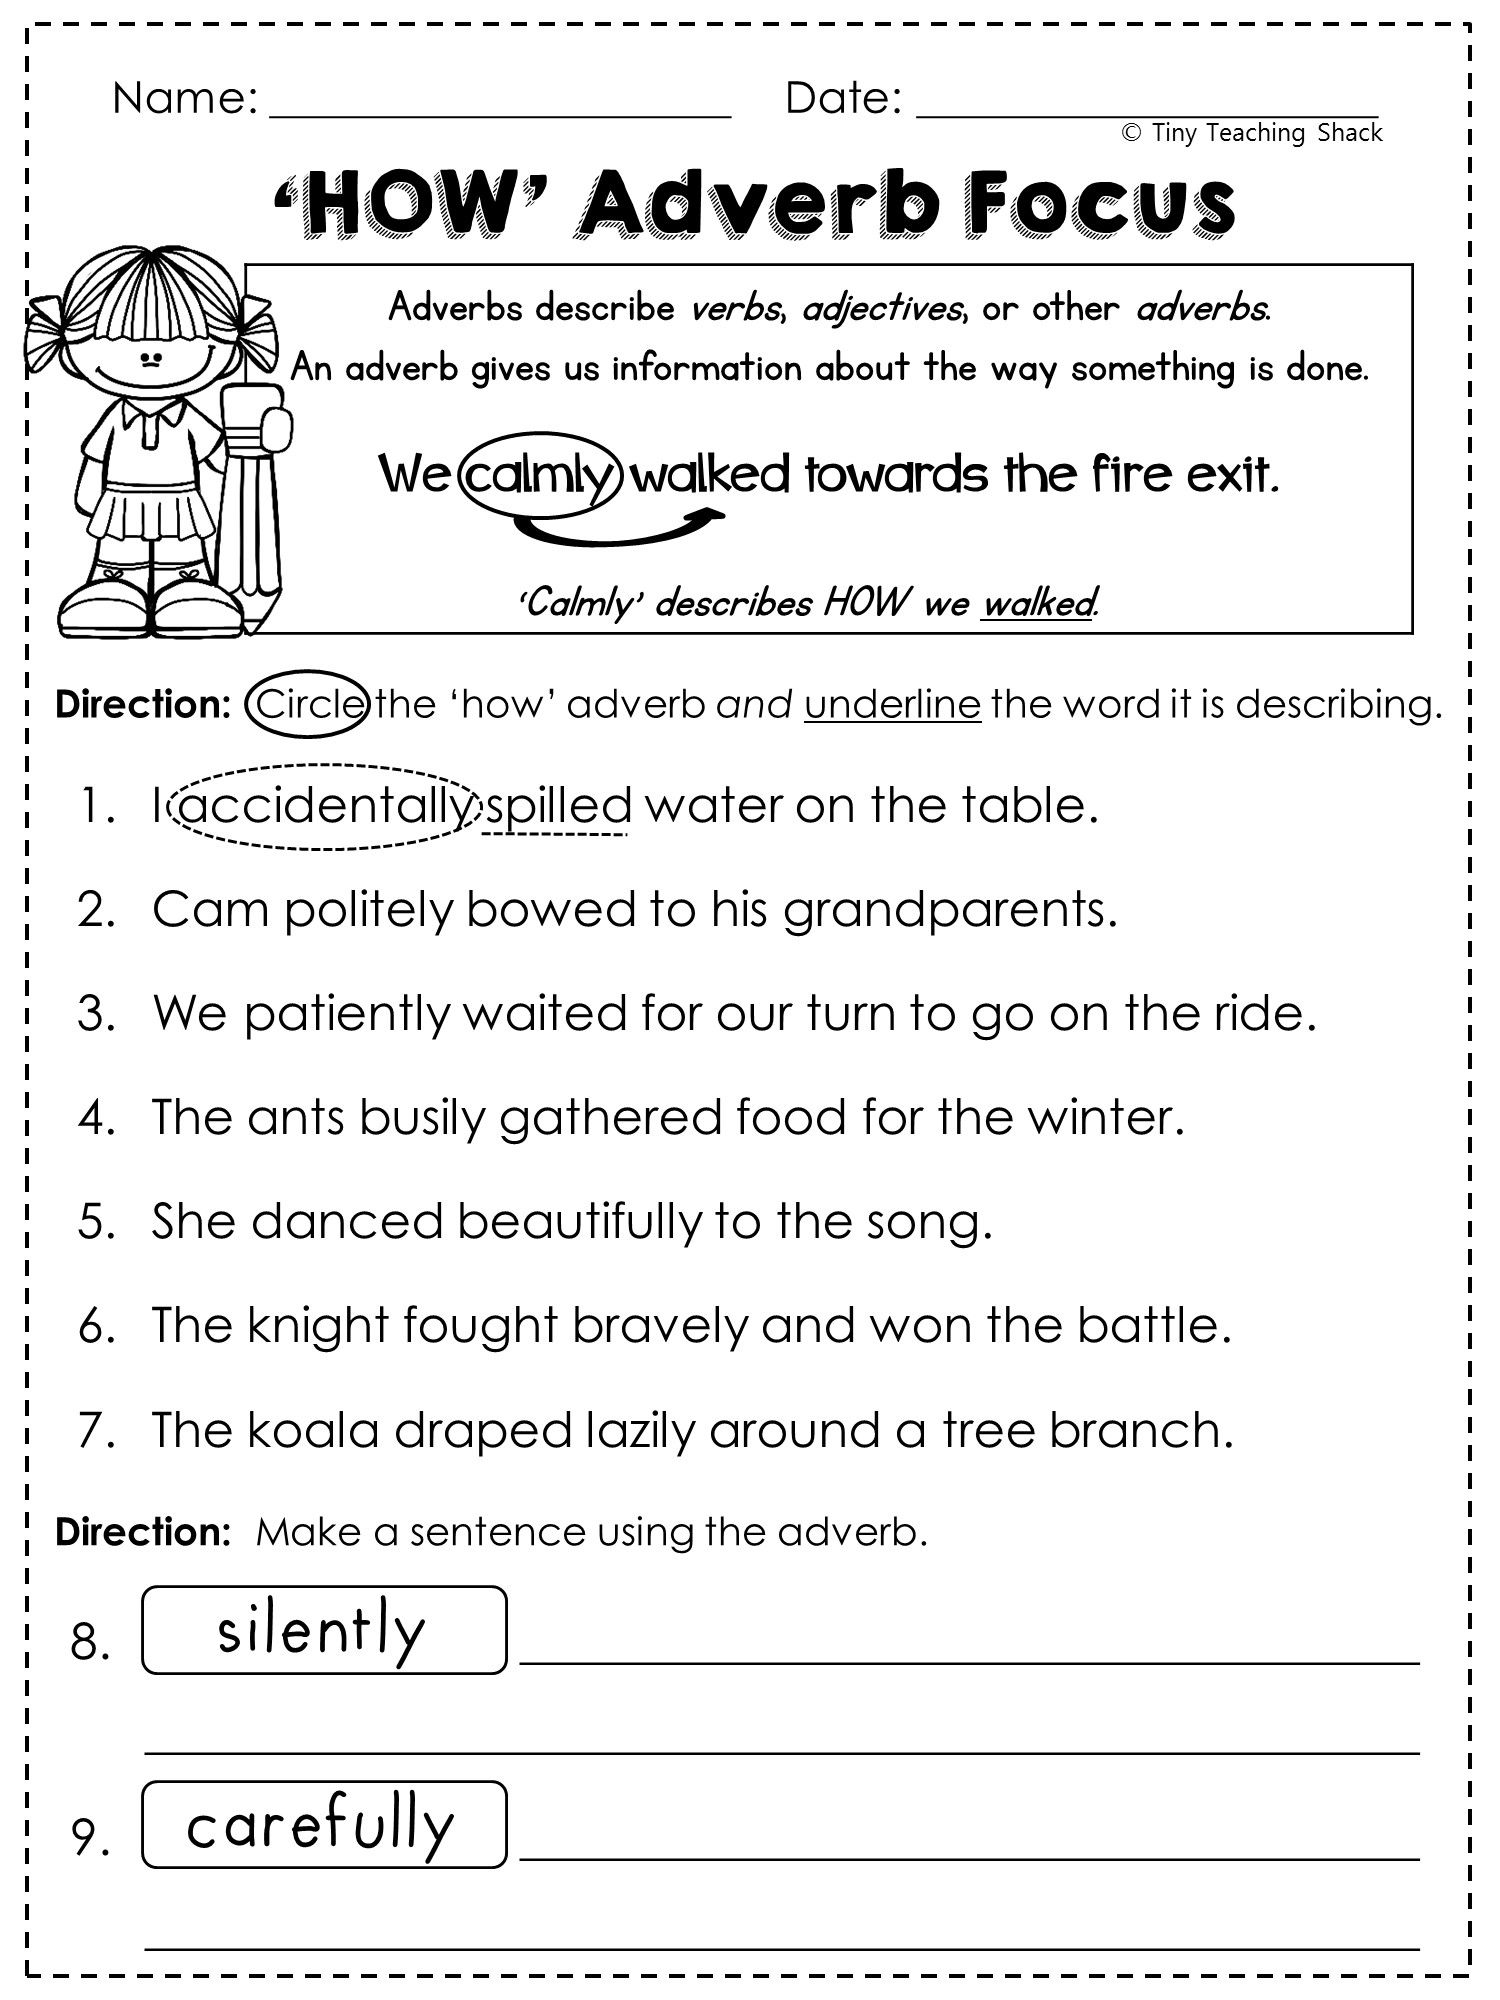 free adverb worksheet   Language arts worksheets [ 2000 x 1500 Pixel ]